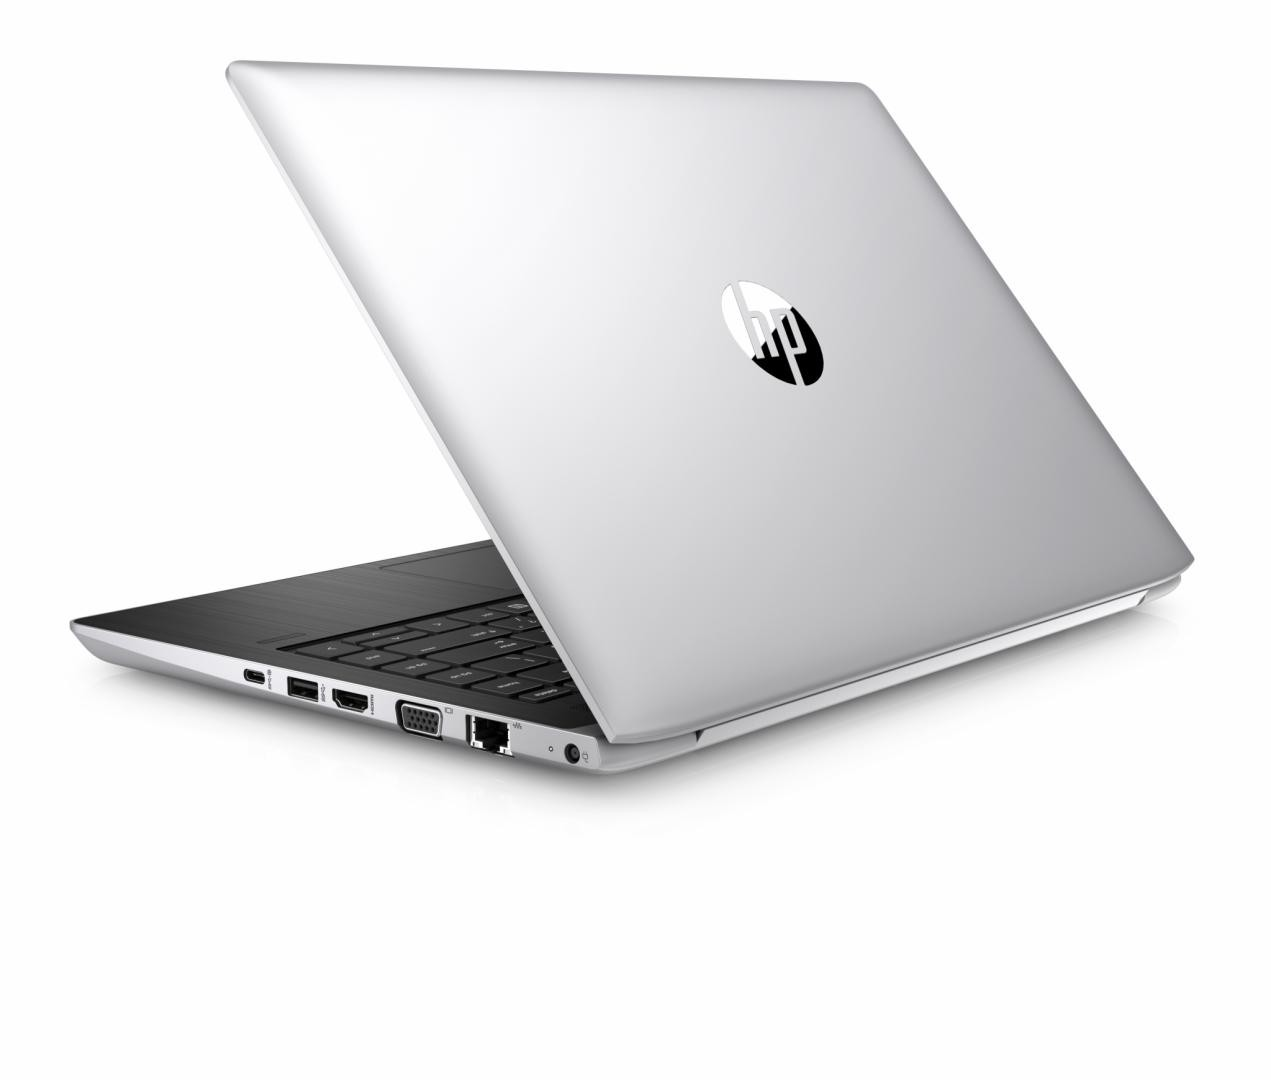 "LAPTOP HP 430G5 13.3"" HD i5-8250U 8GB 256GB UMA WWAN-4G W10P"